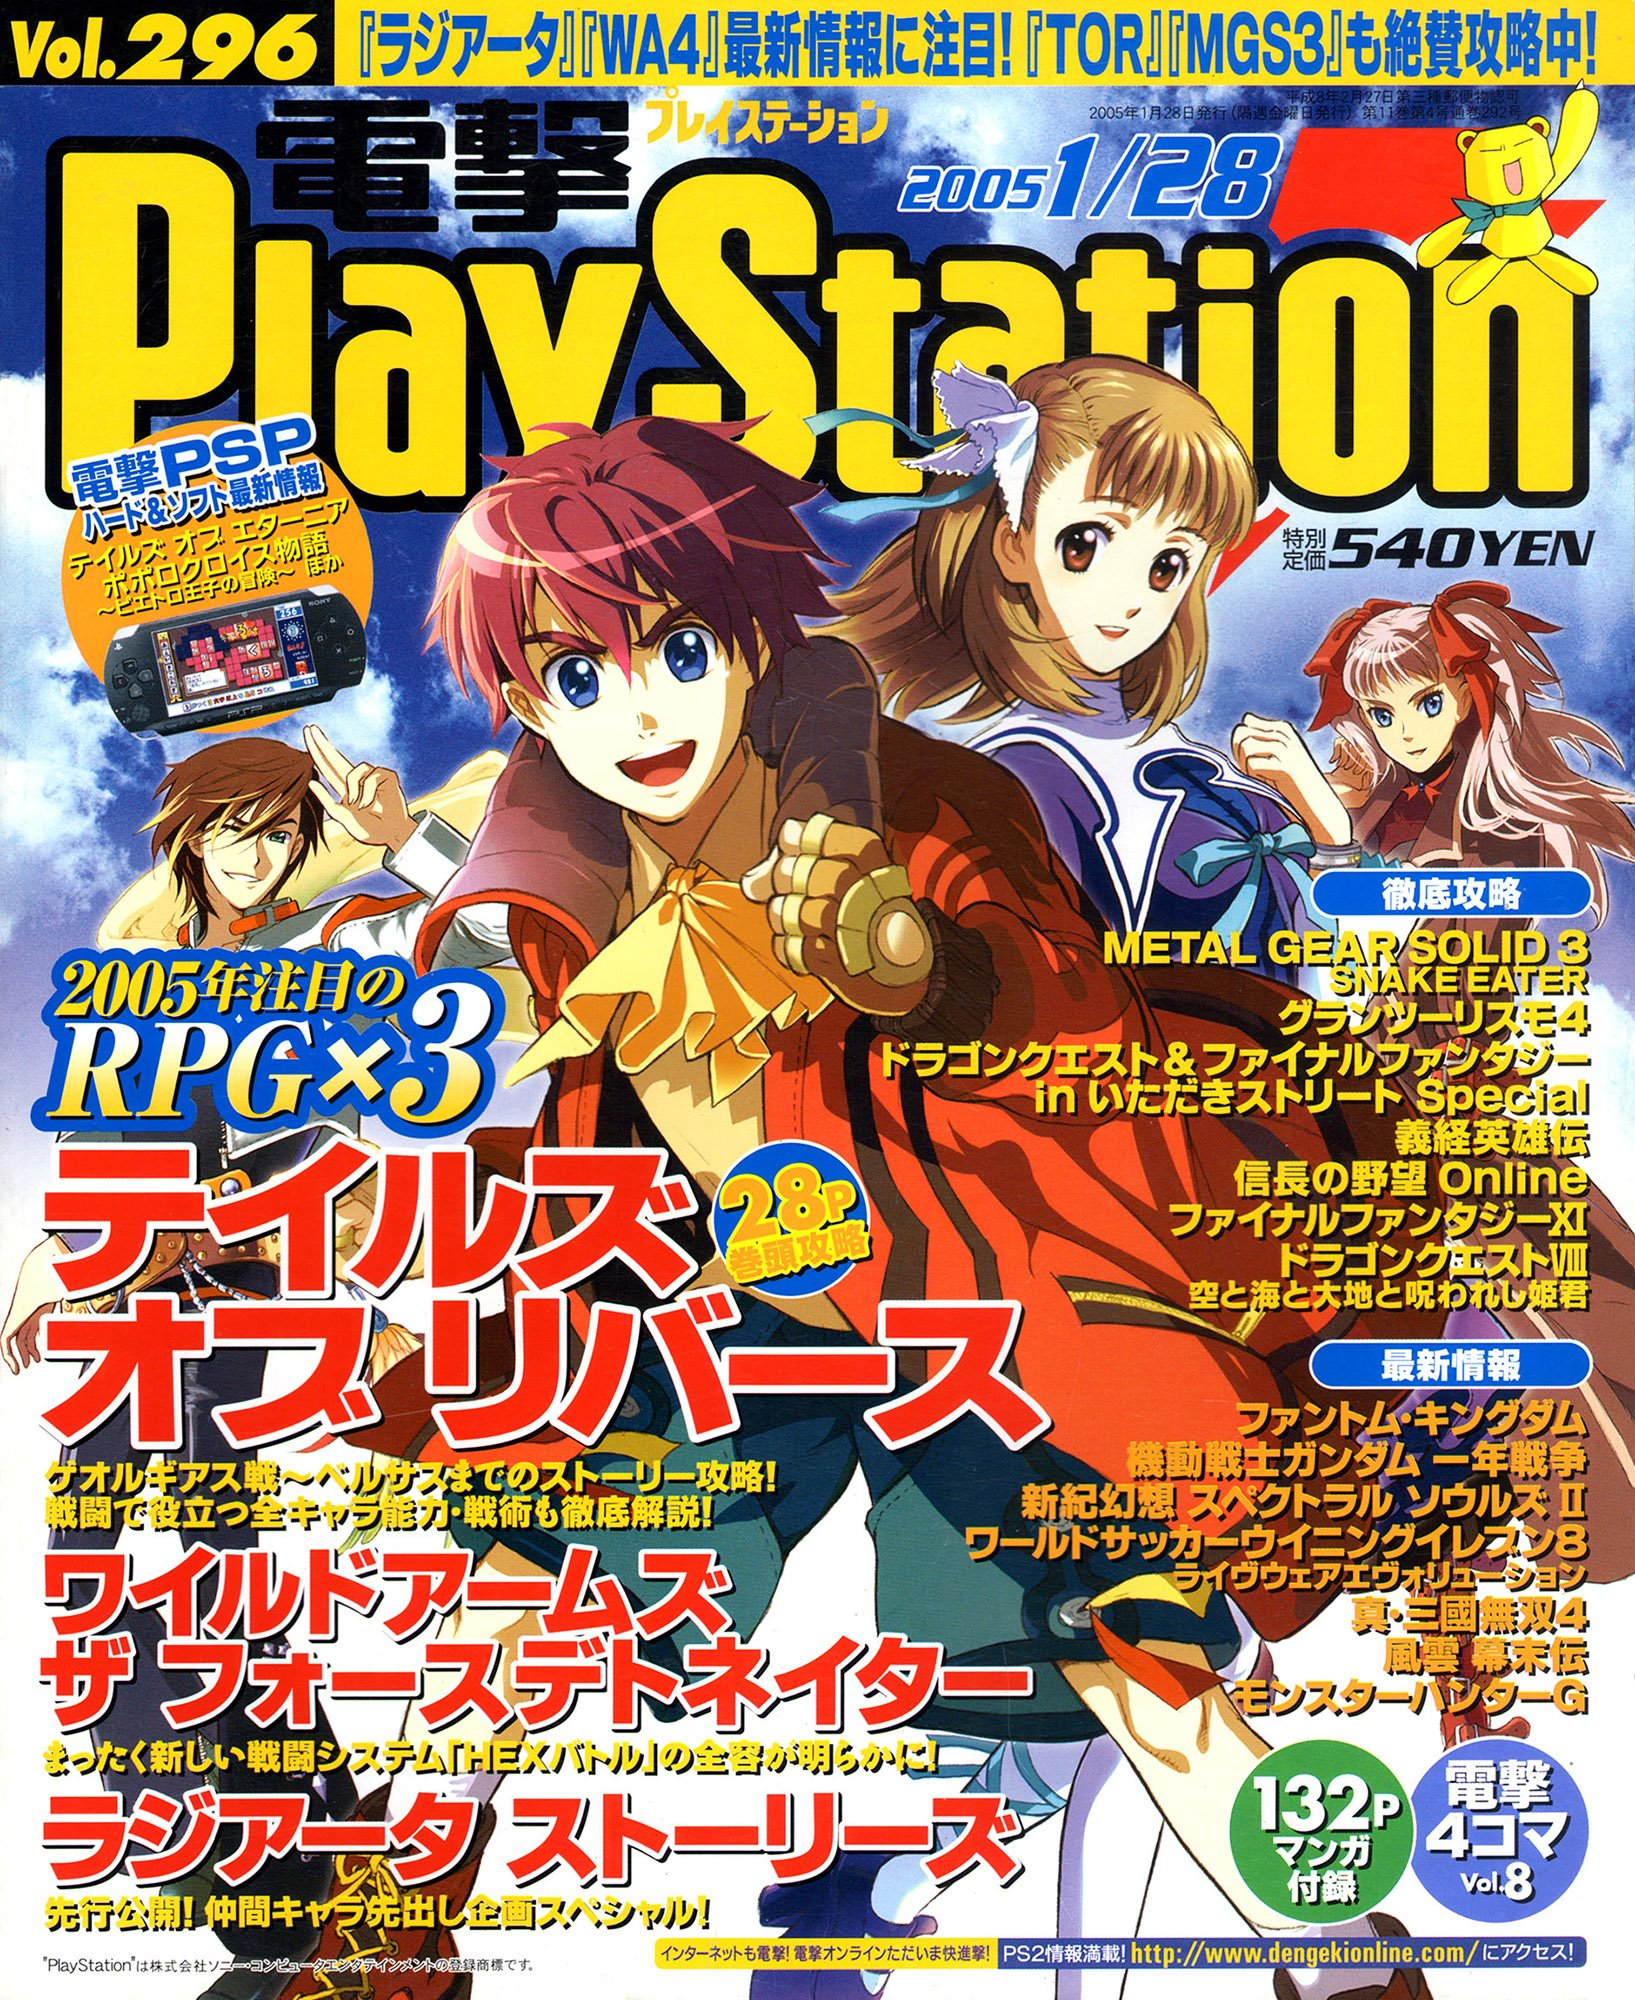 Dengeki PlayStation 296 (January 28, 2005)